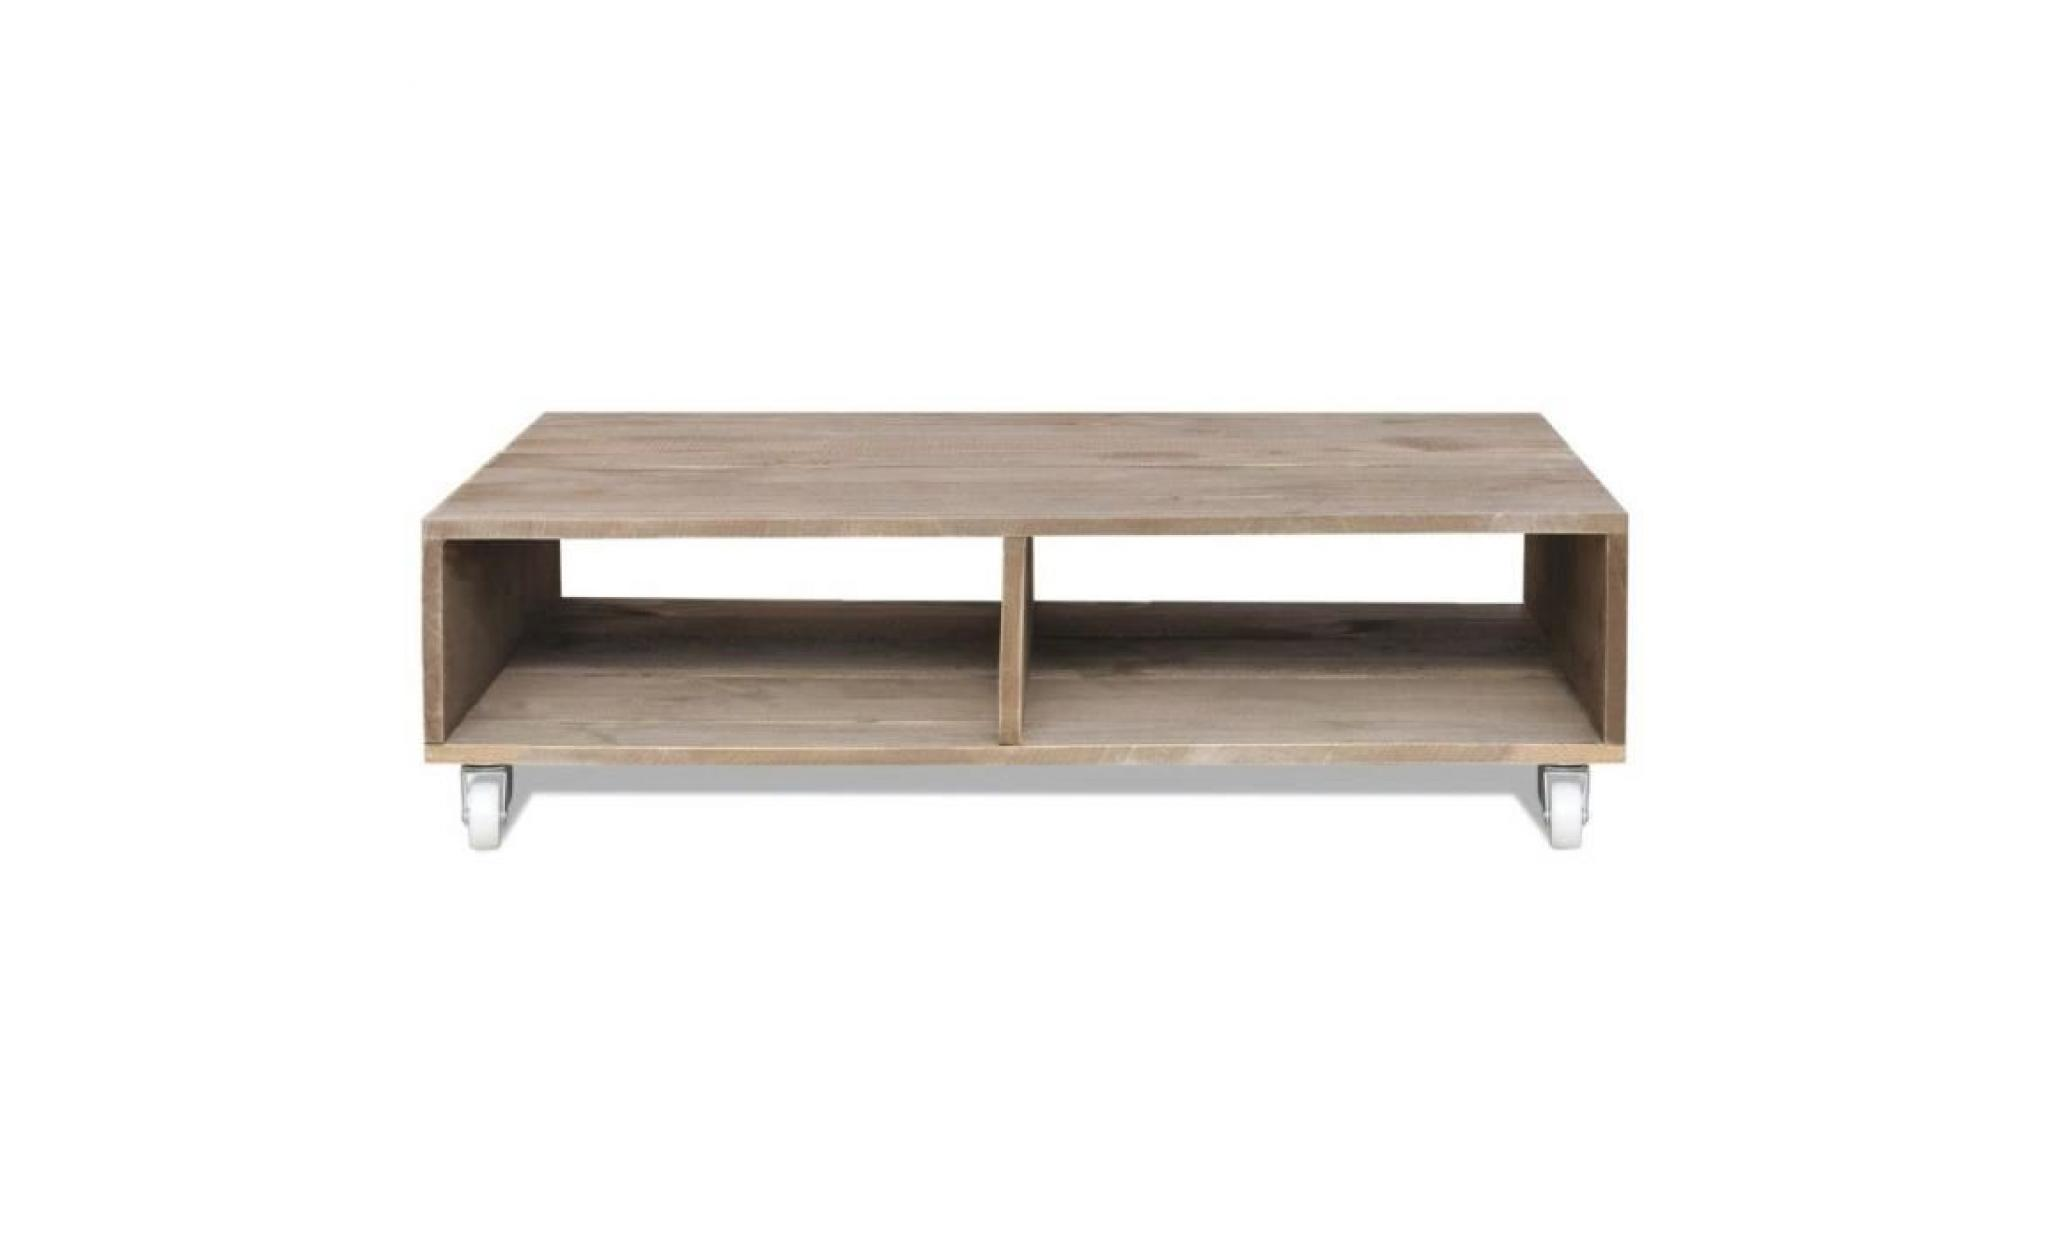 table basse bois massif marron table basse contemporain scandinave pas cher